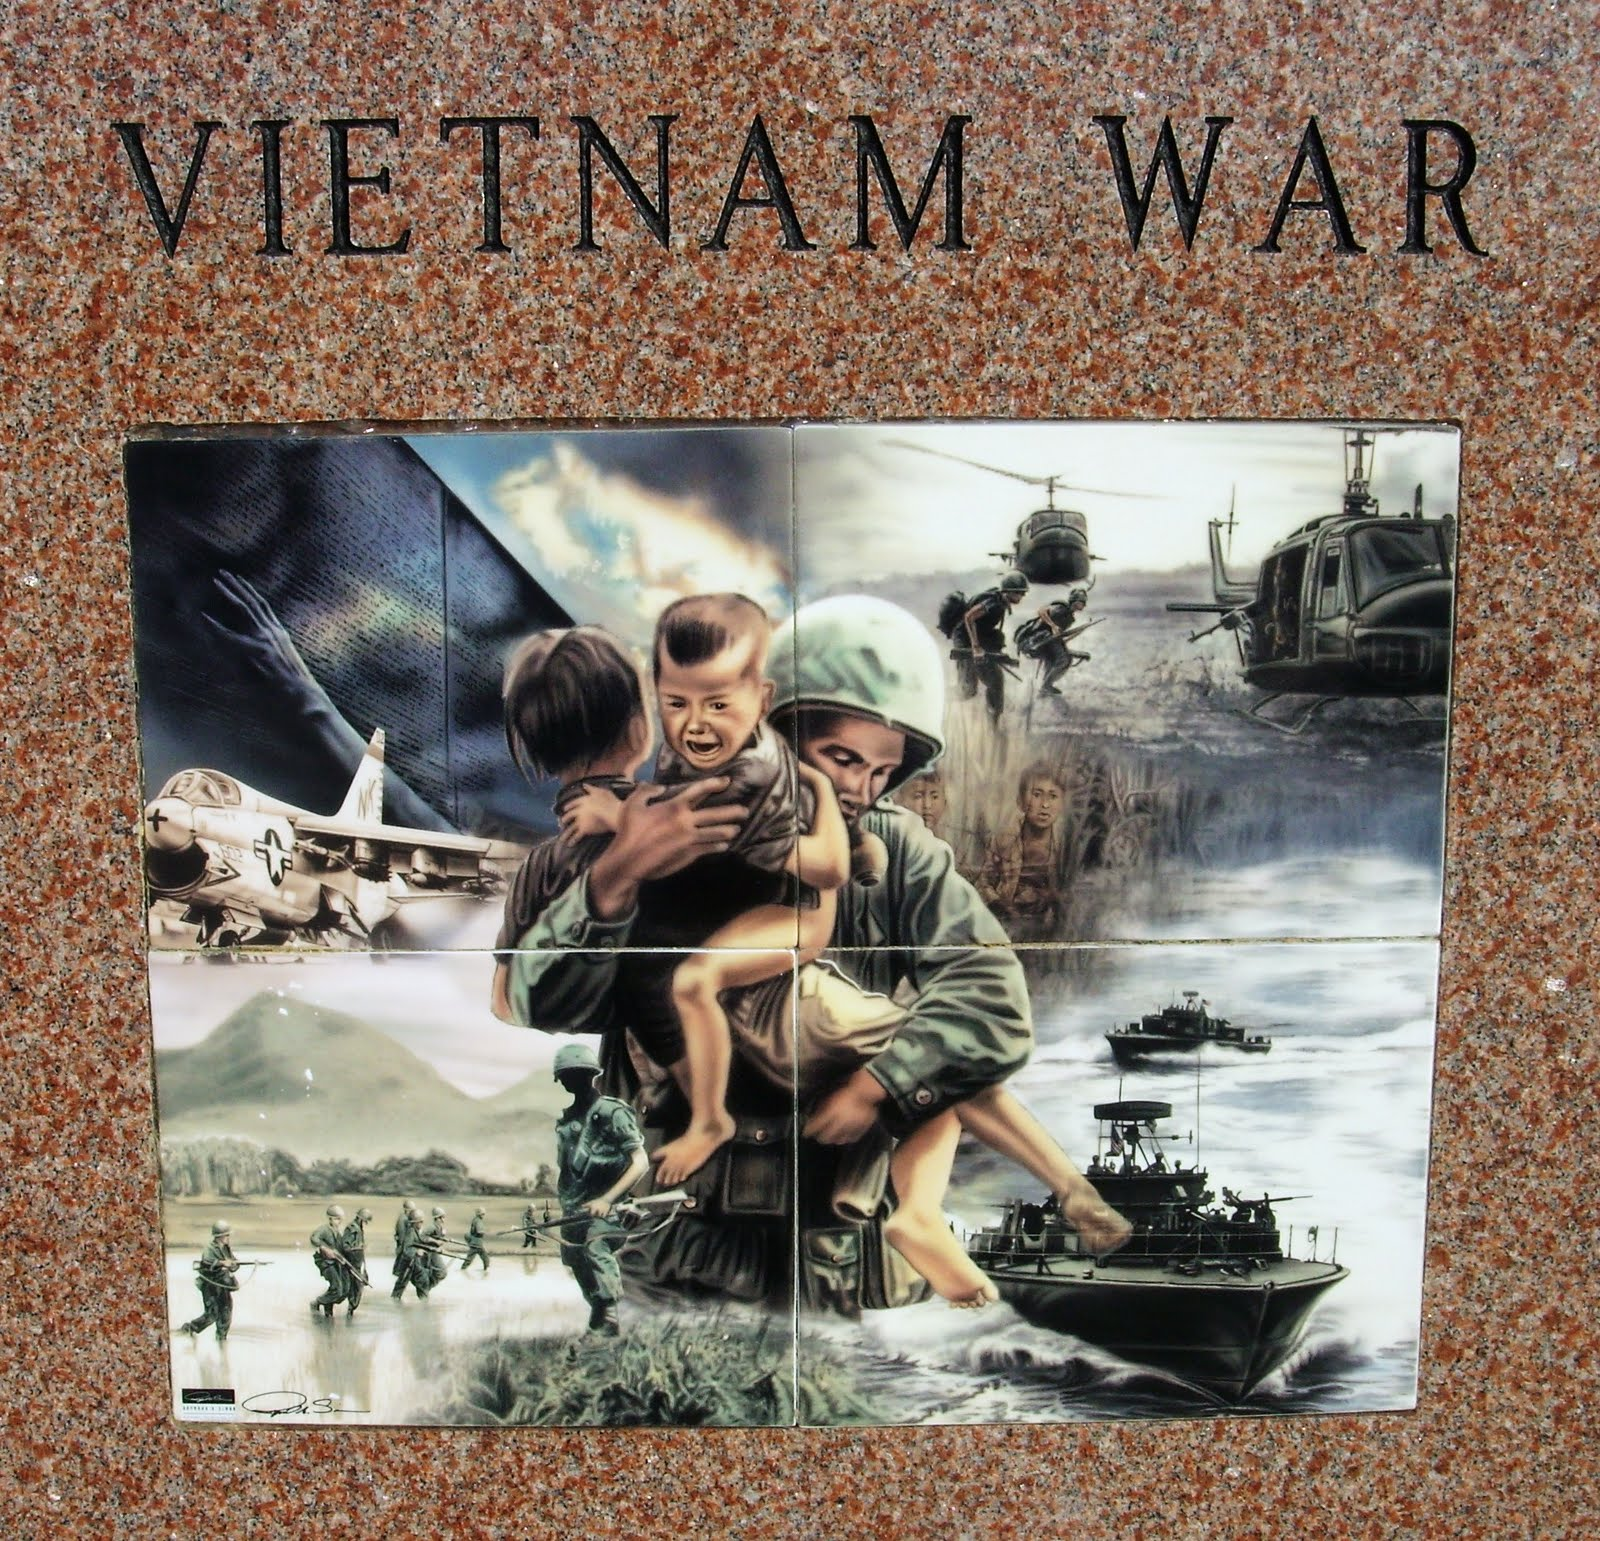 the war in vietnam Speech by martin luther king martin luther king, jr & the vietnam war - duration: 9:31 the alternative news & info report 93,704 views 9:31.